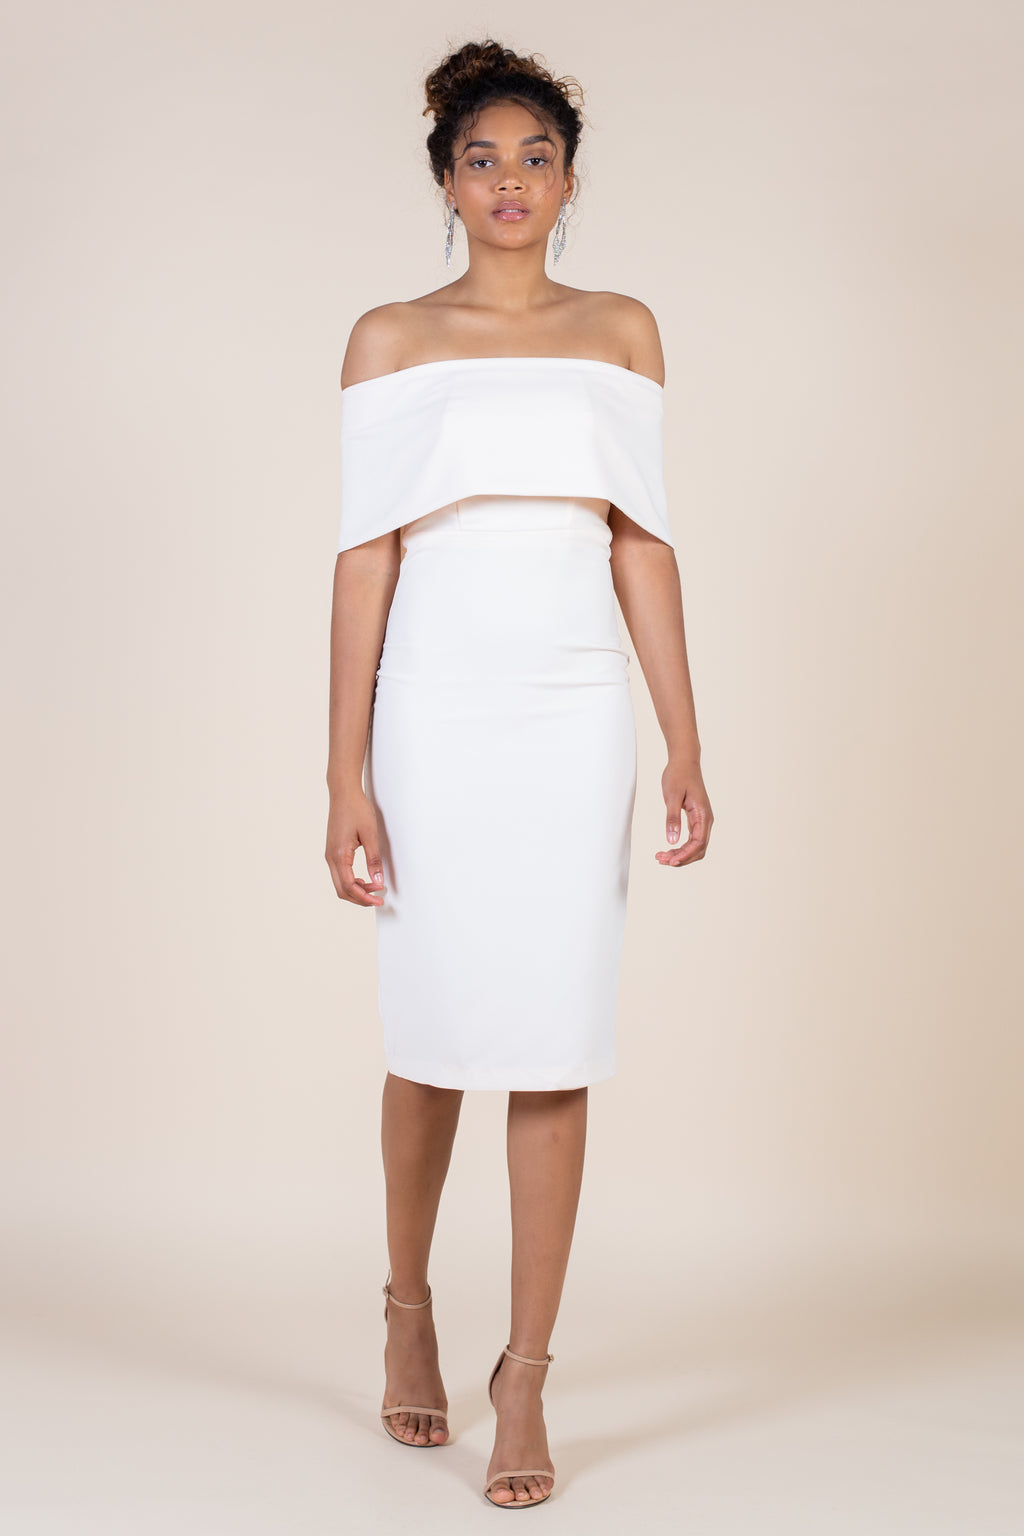 Own the Evening Off Shoulder Midi Dress - honey